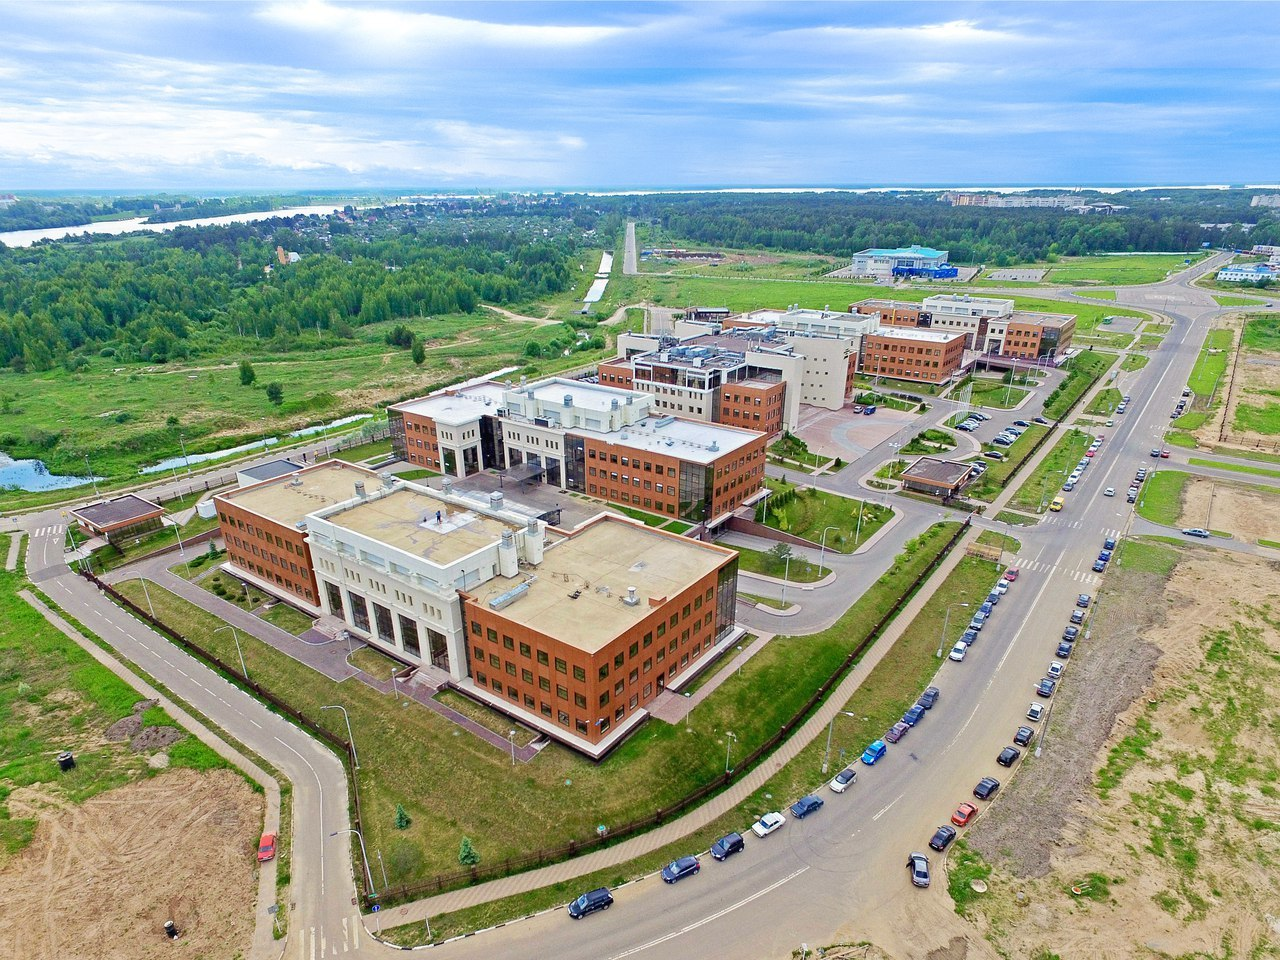 An aerial view of Dubna Special Economic Zone in Russia (Courtesy of Dubna Special Economic Zone)